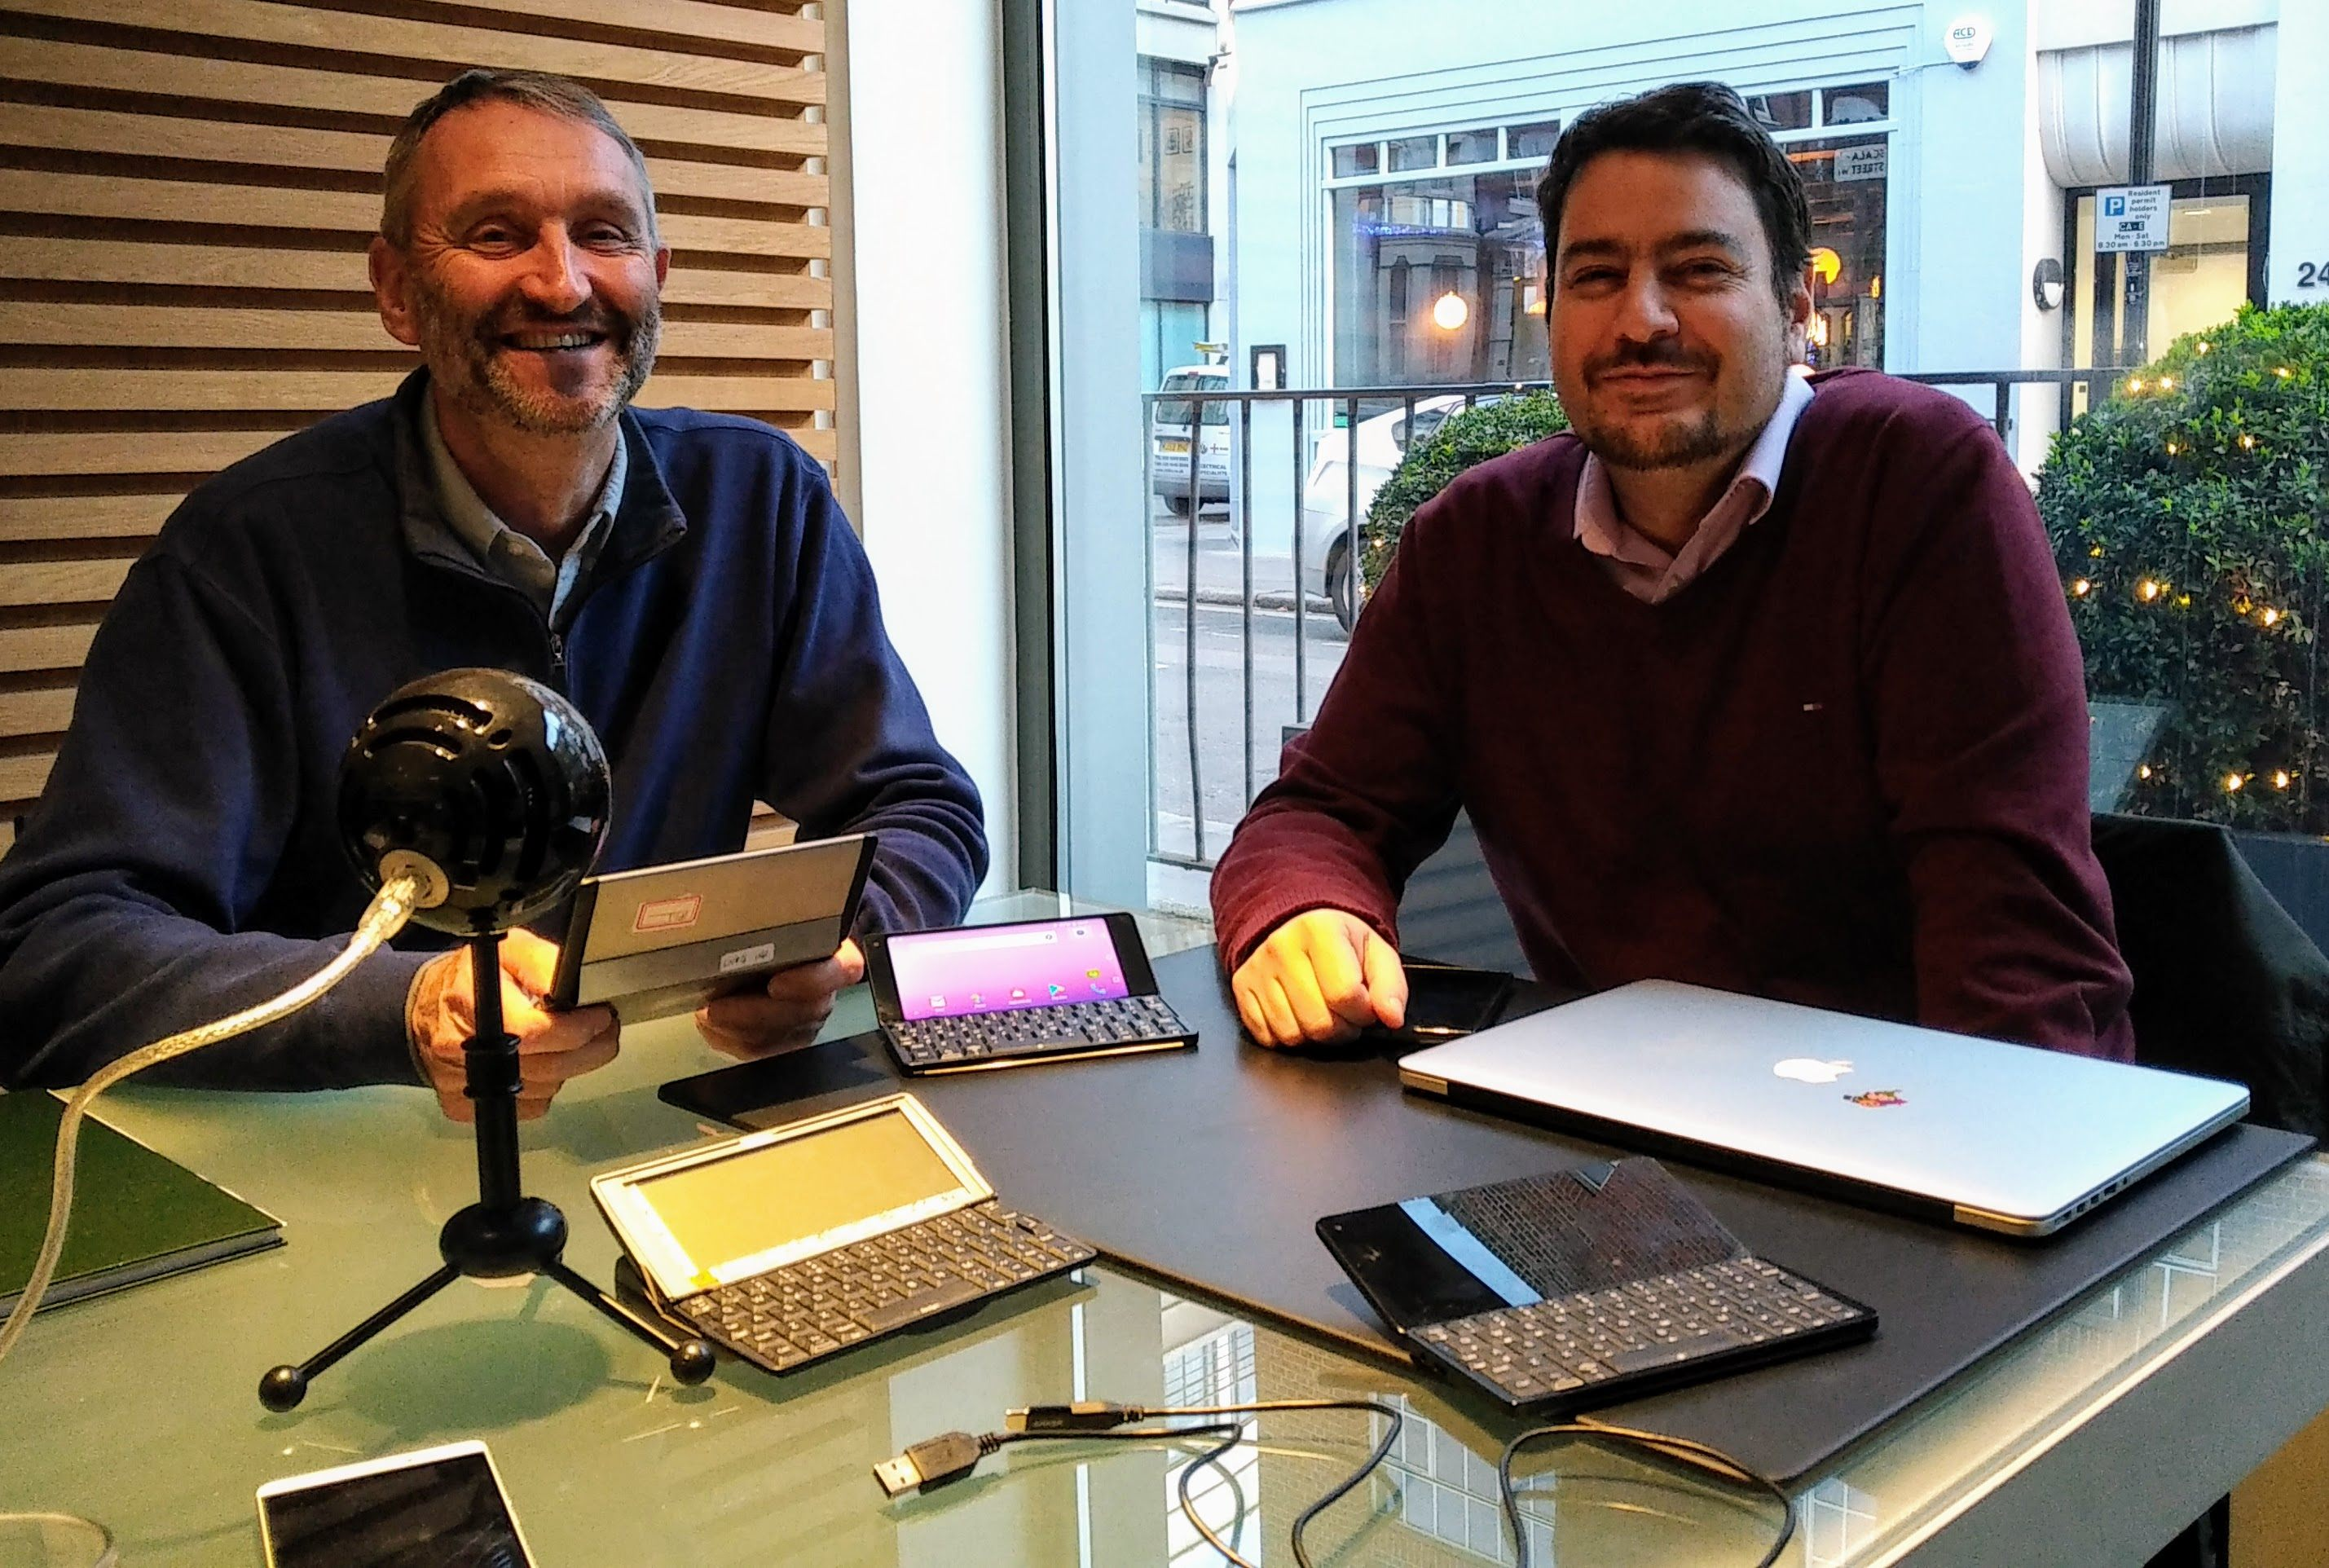 Martin Riddiford (left) and Davide Guidi (right) showing pre-production models of the Gemini, alongside the Psion Series 5MX, at Therefore's design studio in London